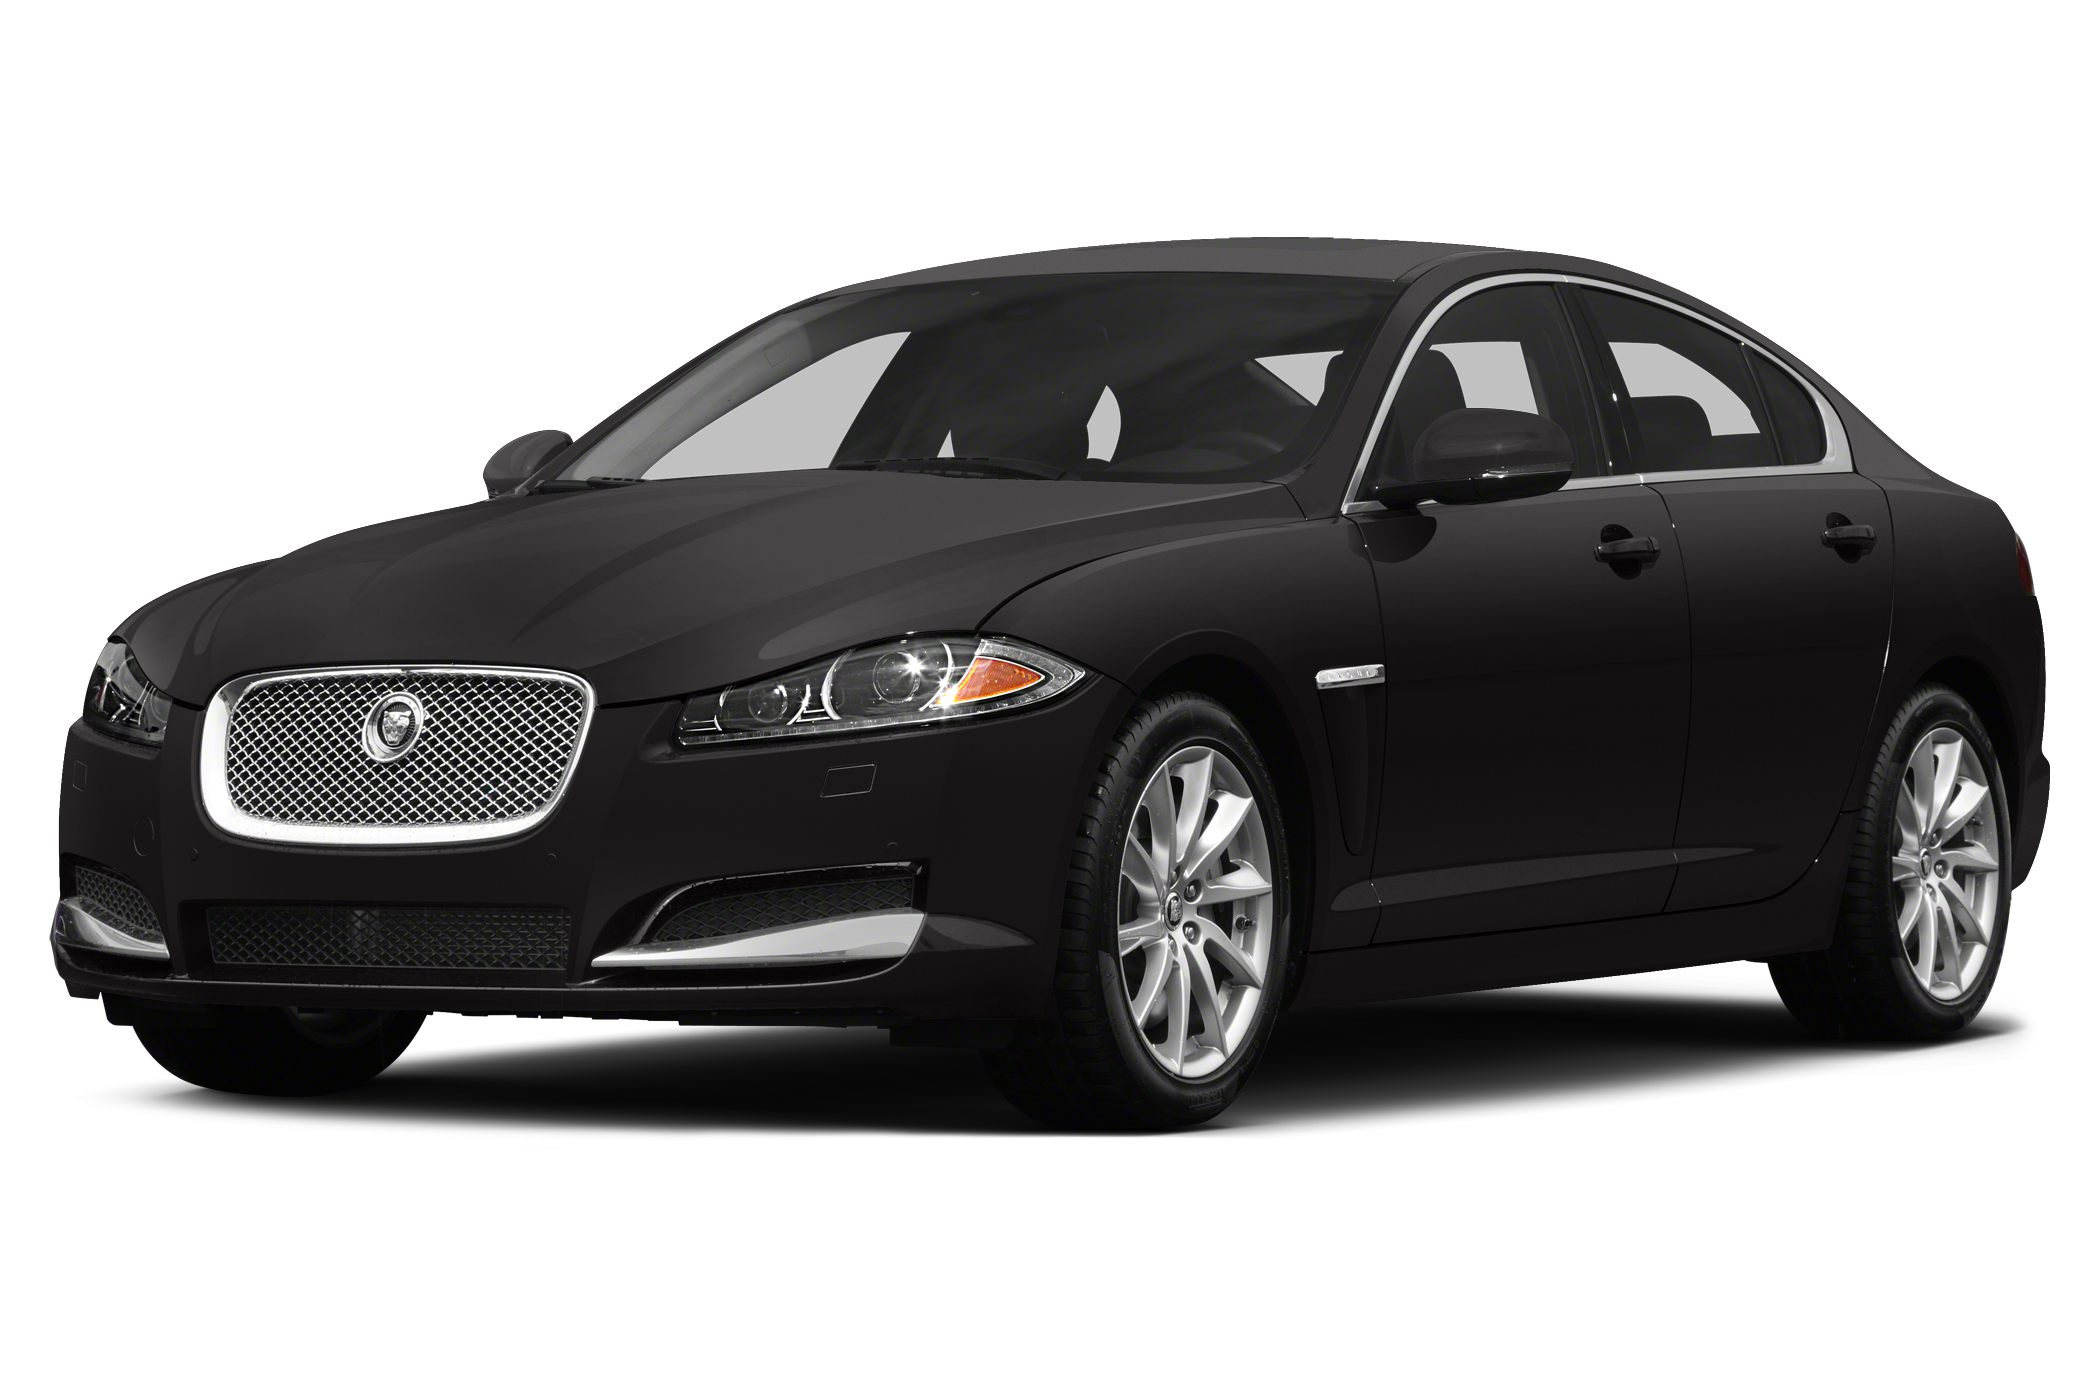 2015 Jaguar XF 2.0T Premium Sedan for sale in Mission Viejo for $51,738 with 25 miles.